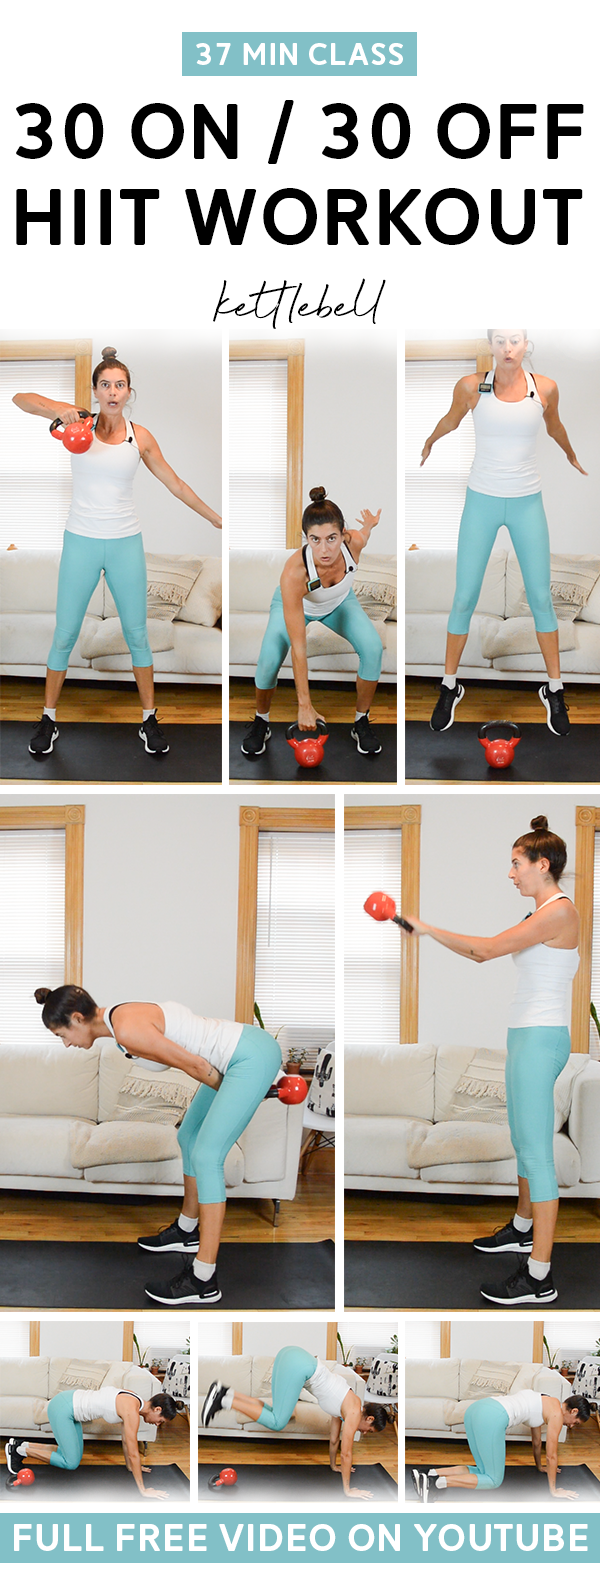 30 On / 30 Off Kettlebell HIIT Class - This free hiit workout class video includes warm up and cool down.  The whole body and all you need is a kettlebell.  The interval structure is 30 seconds on / 30 seconds off.  #kettlebell #hiit # workout